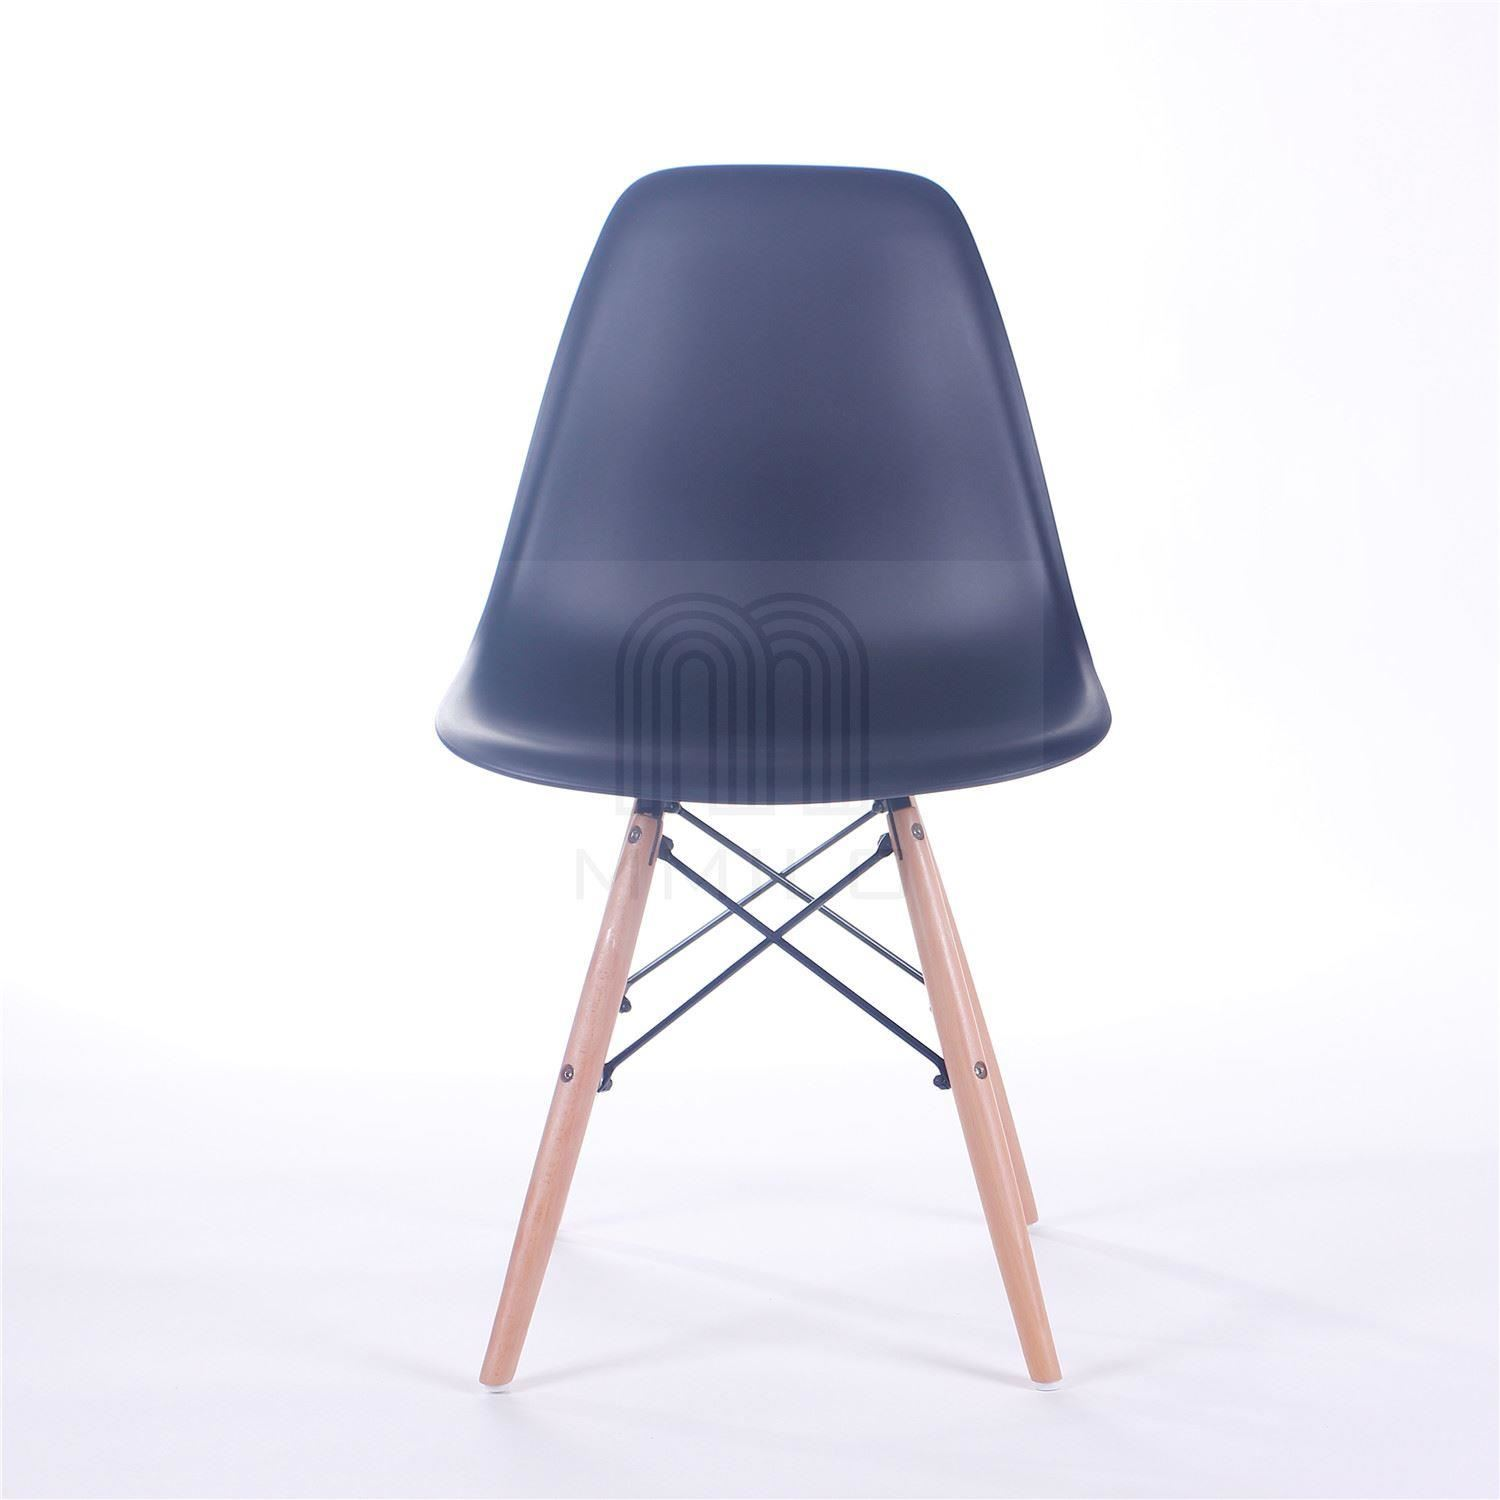 Charles Ray Eames Eiffel Inspired DSW Side Dining Chair  : 223418fb 98e1 44d0 b3fa ec0720cd1454 from www.ebay.co.uk size 1500 x 1500 jpeg 80kB